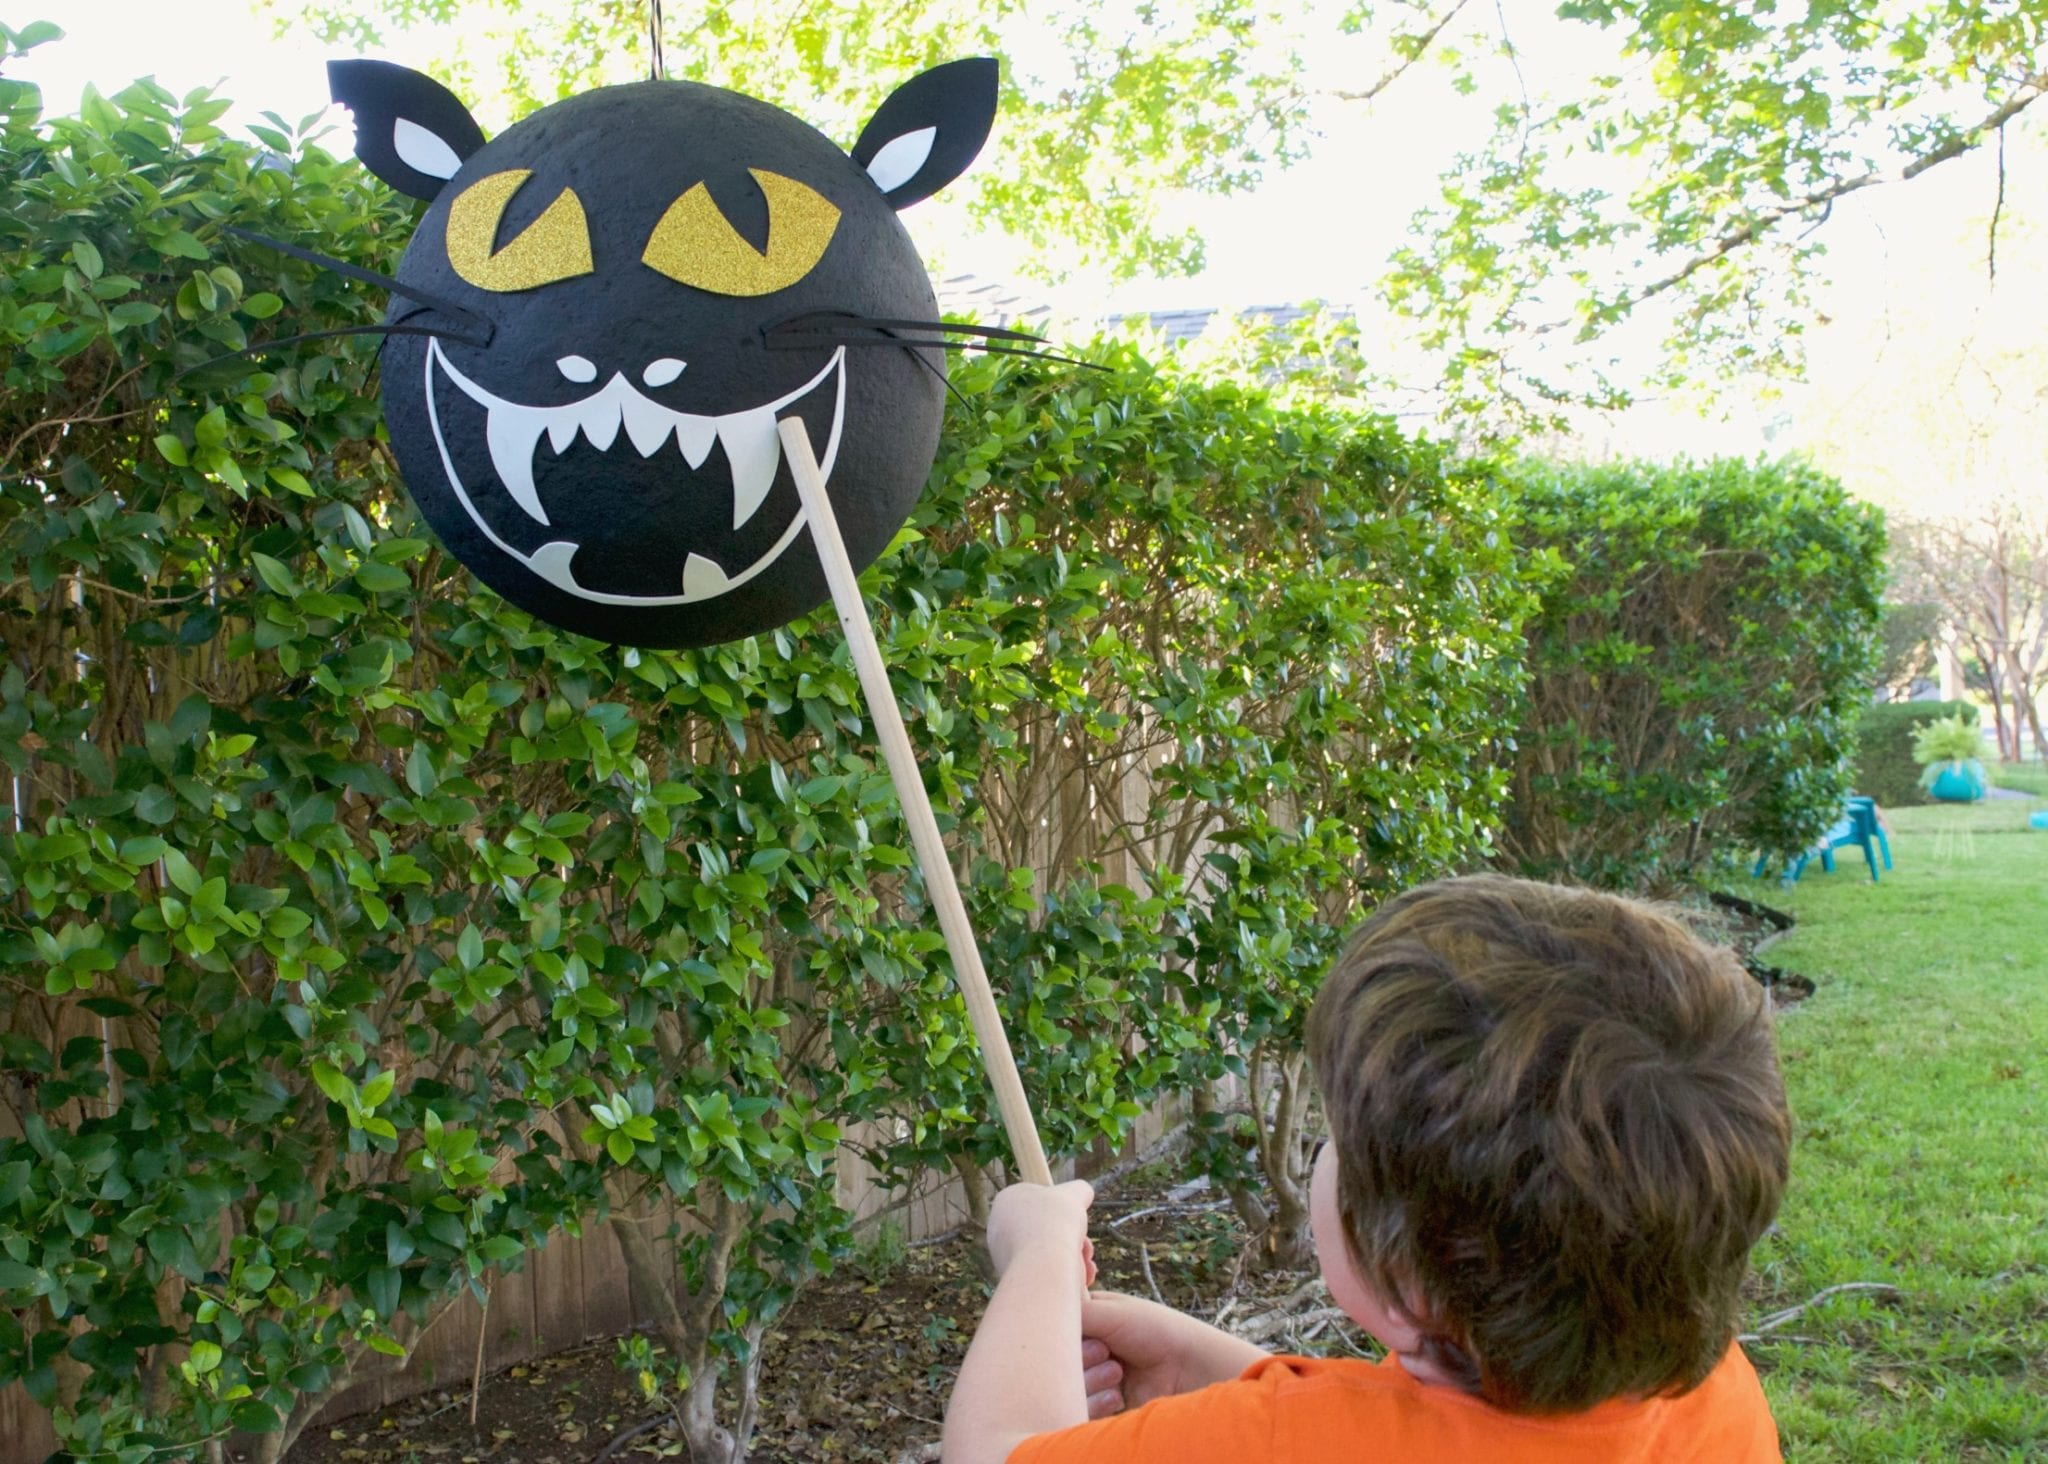 Child hitting a paper-mache Halloween piñata that looks like a black cat.